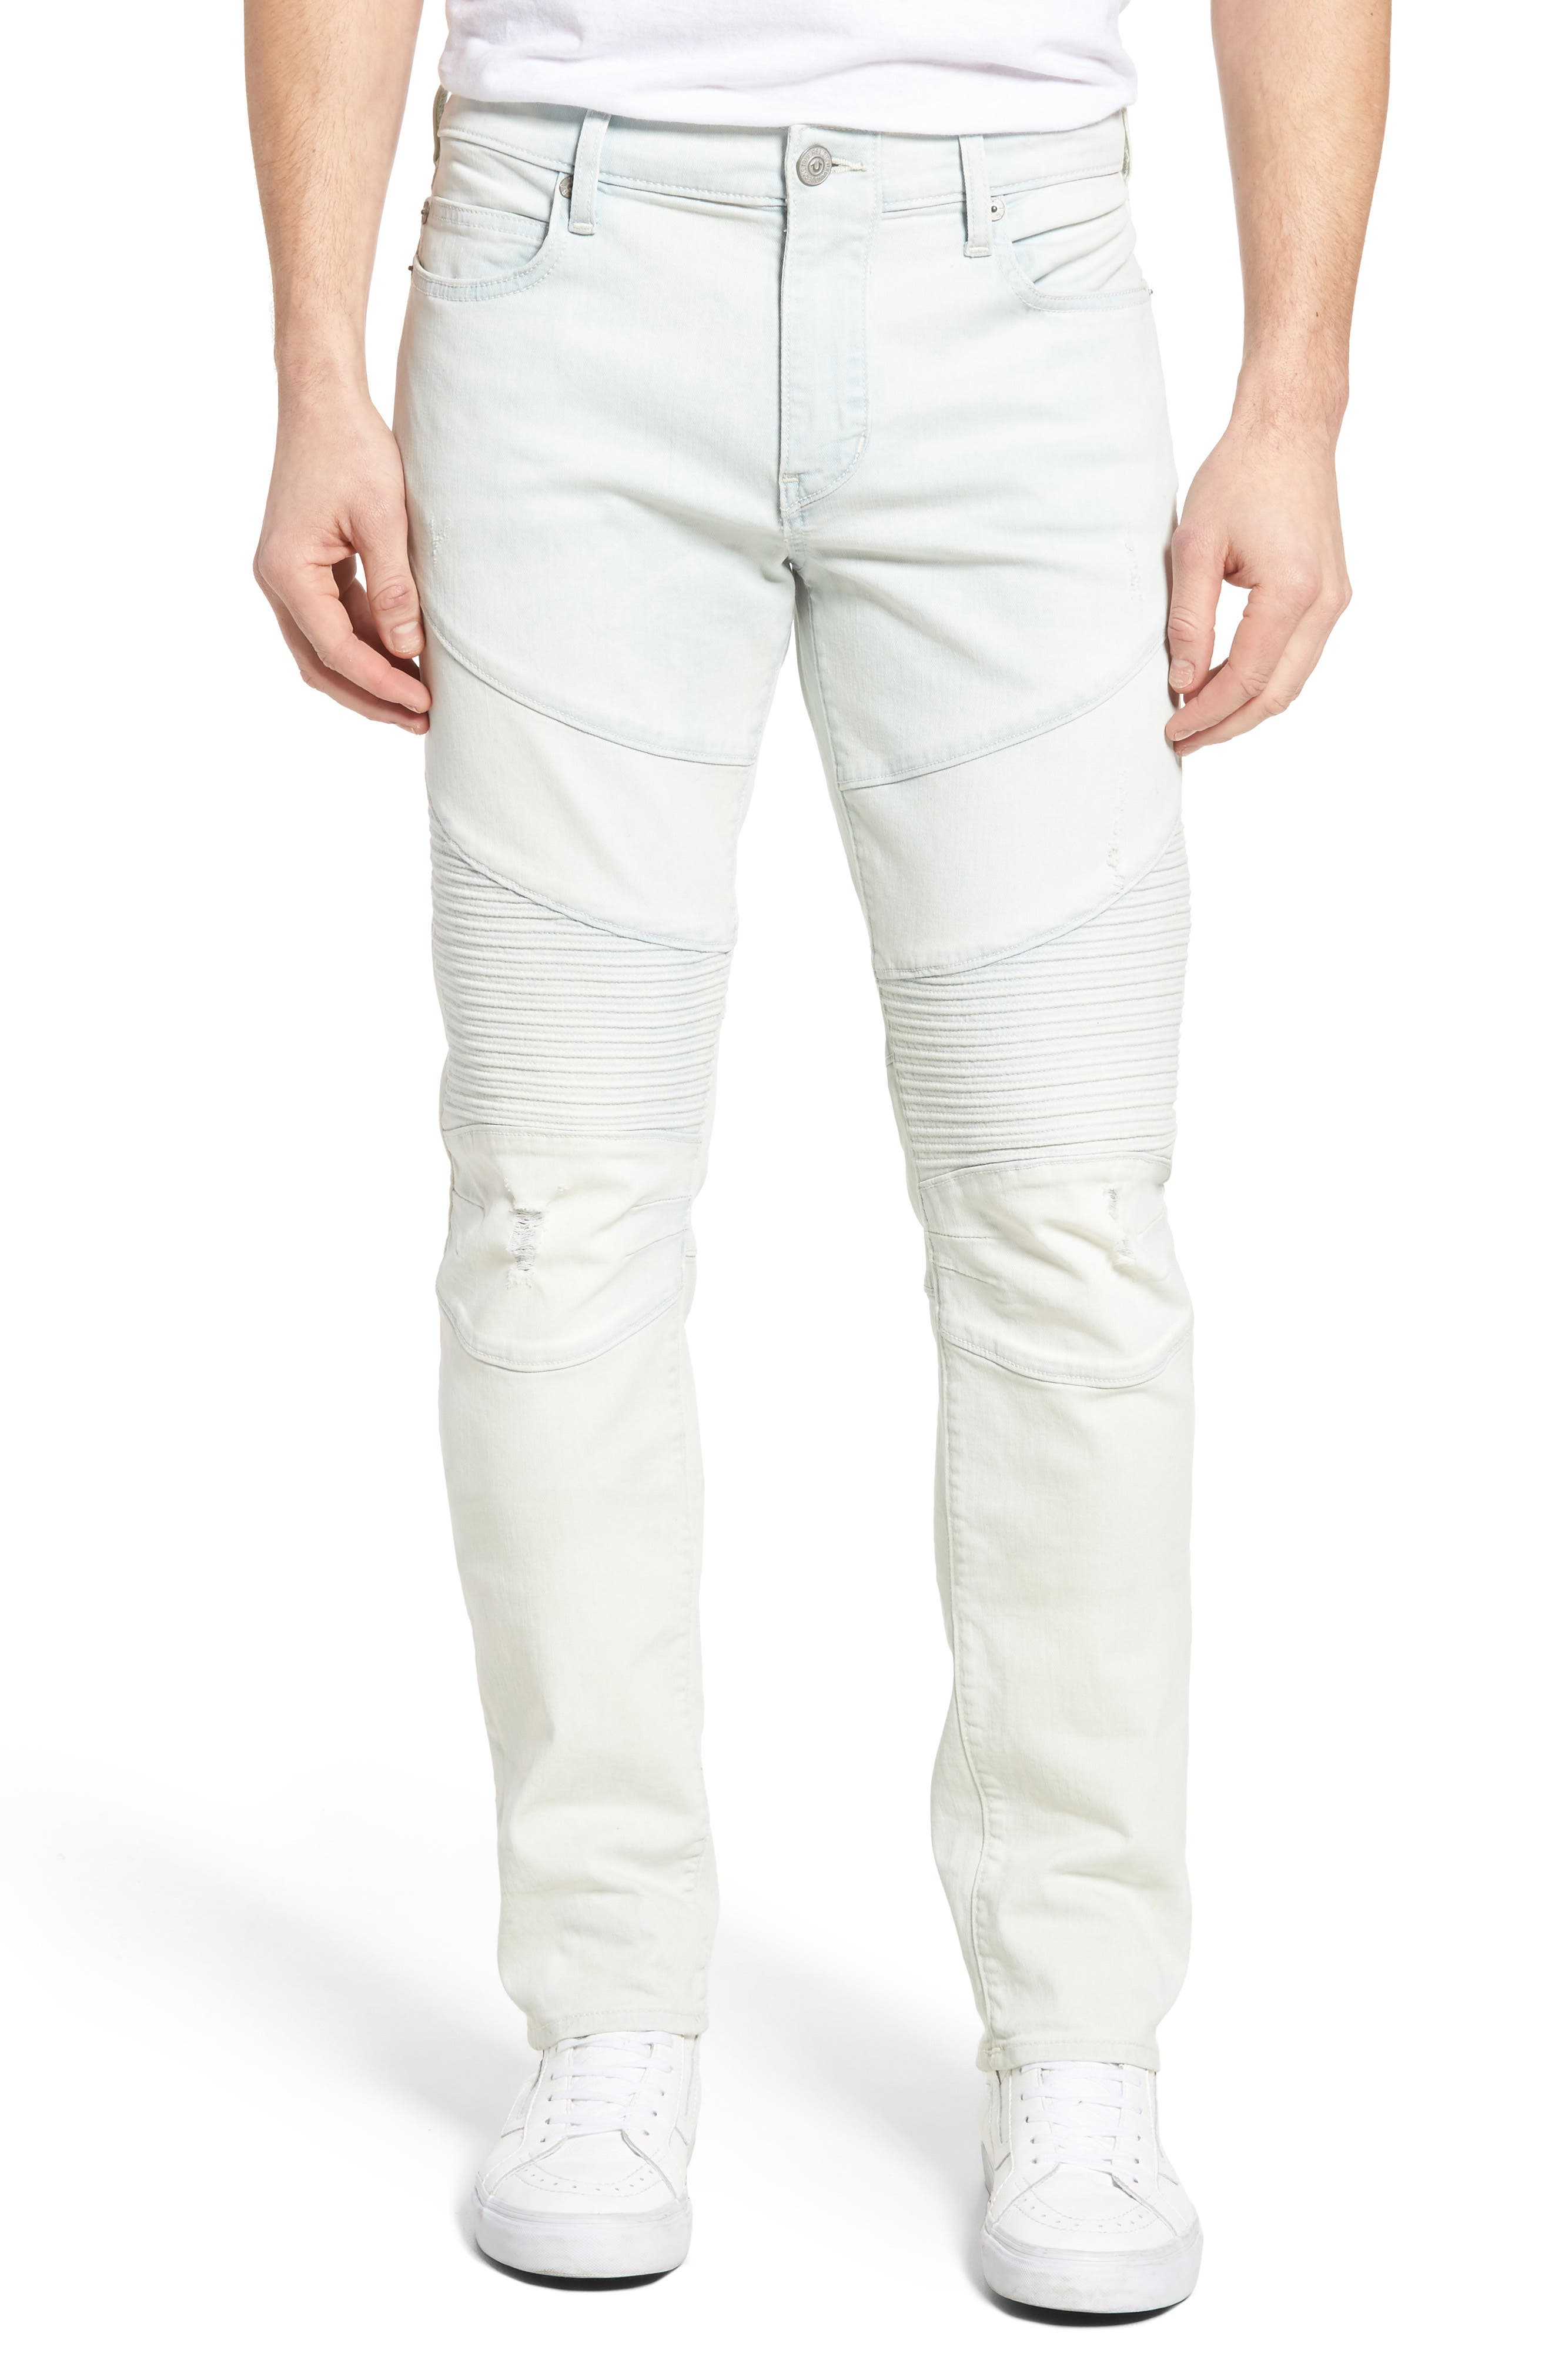 Rocco Skinny Fit Moto Jeans,                             Main thumbnail 1, color,                             Light Daze